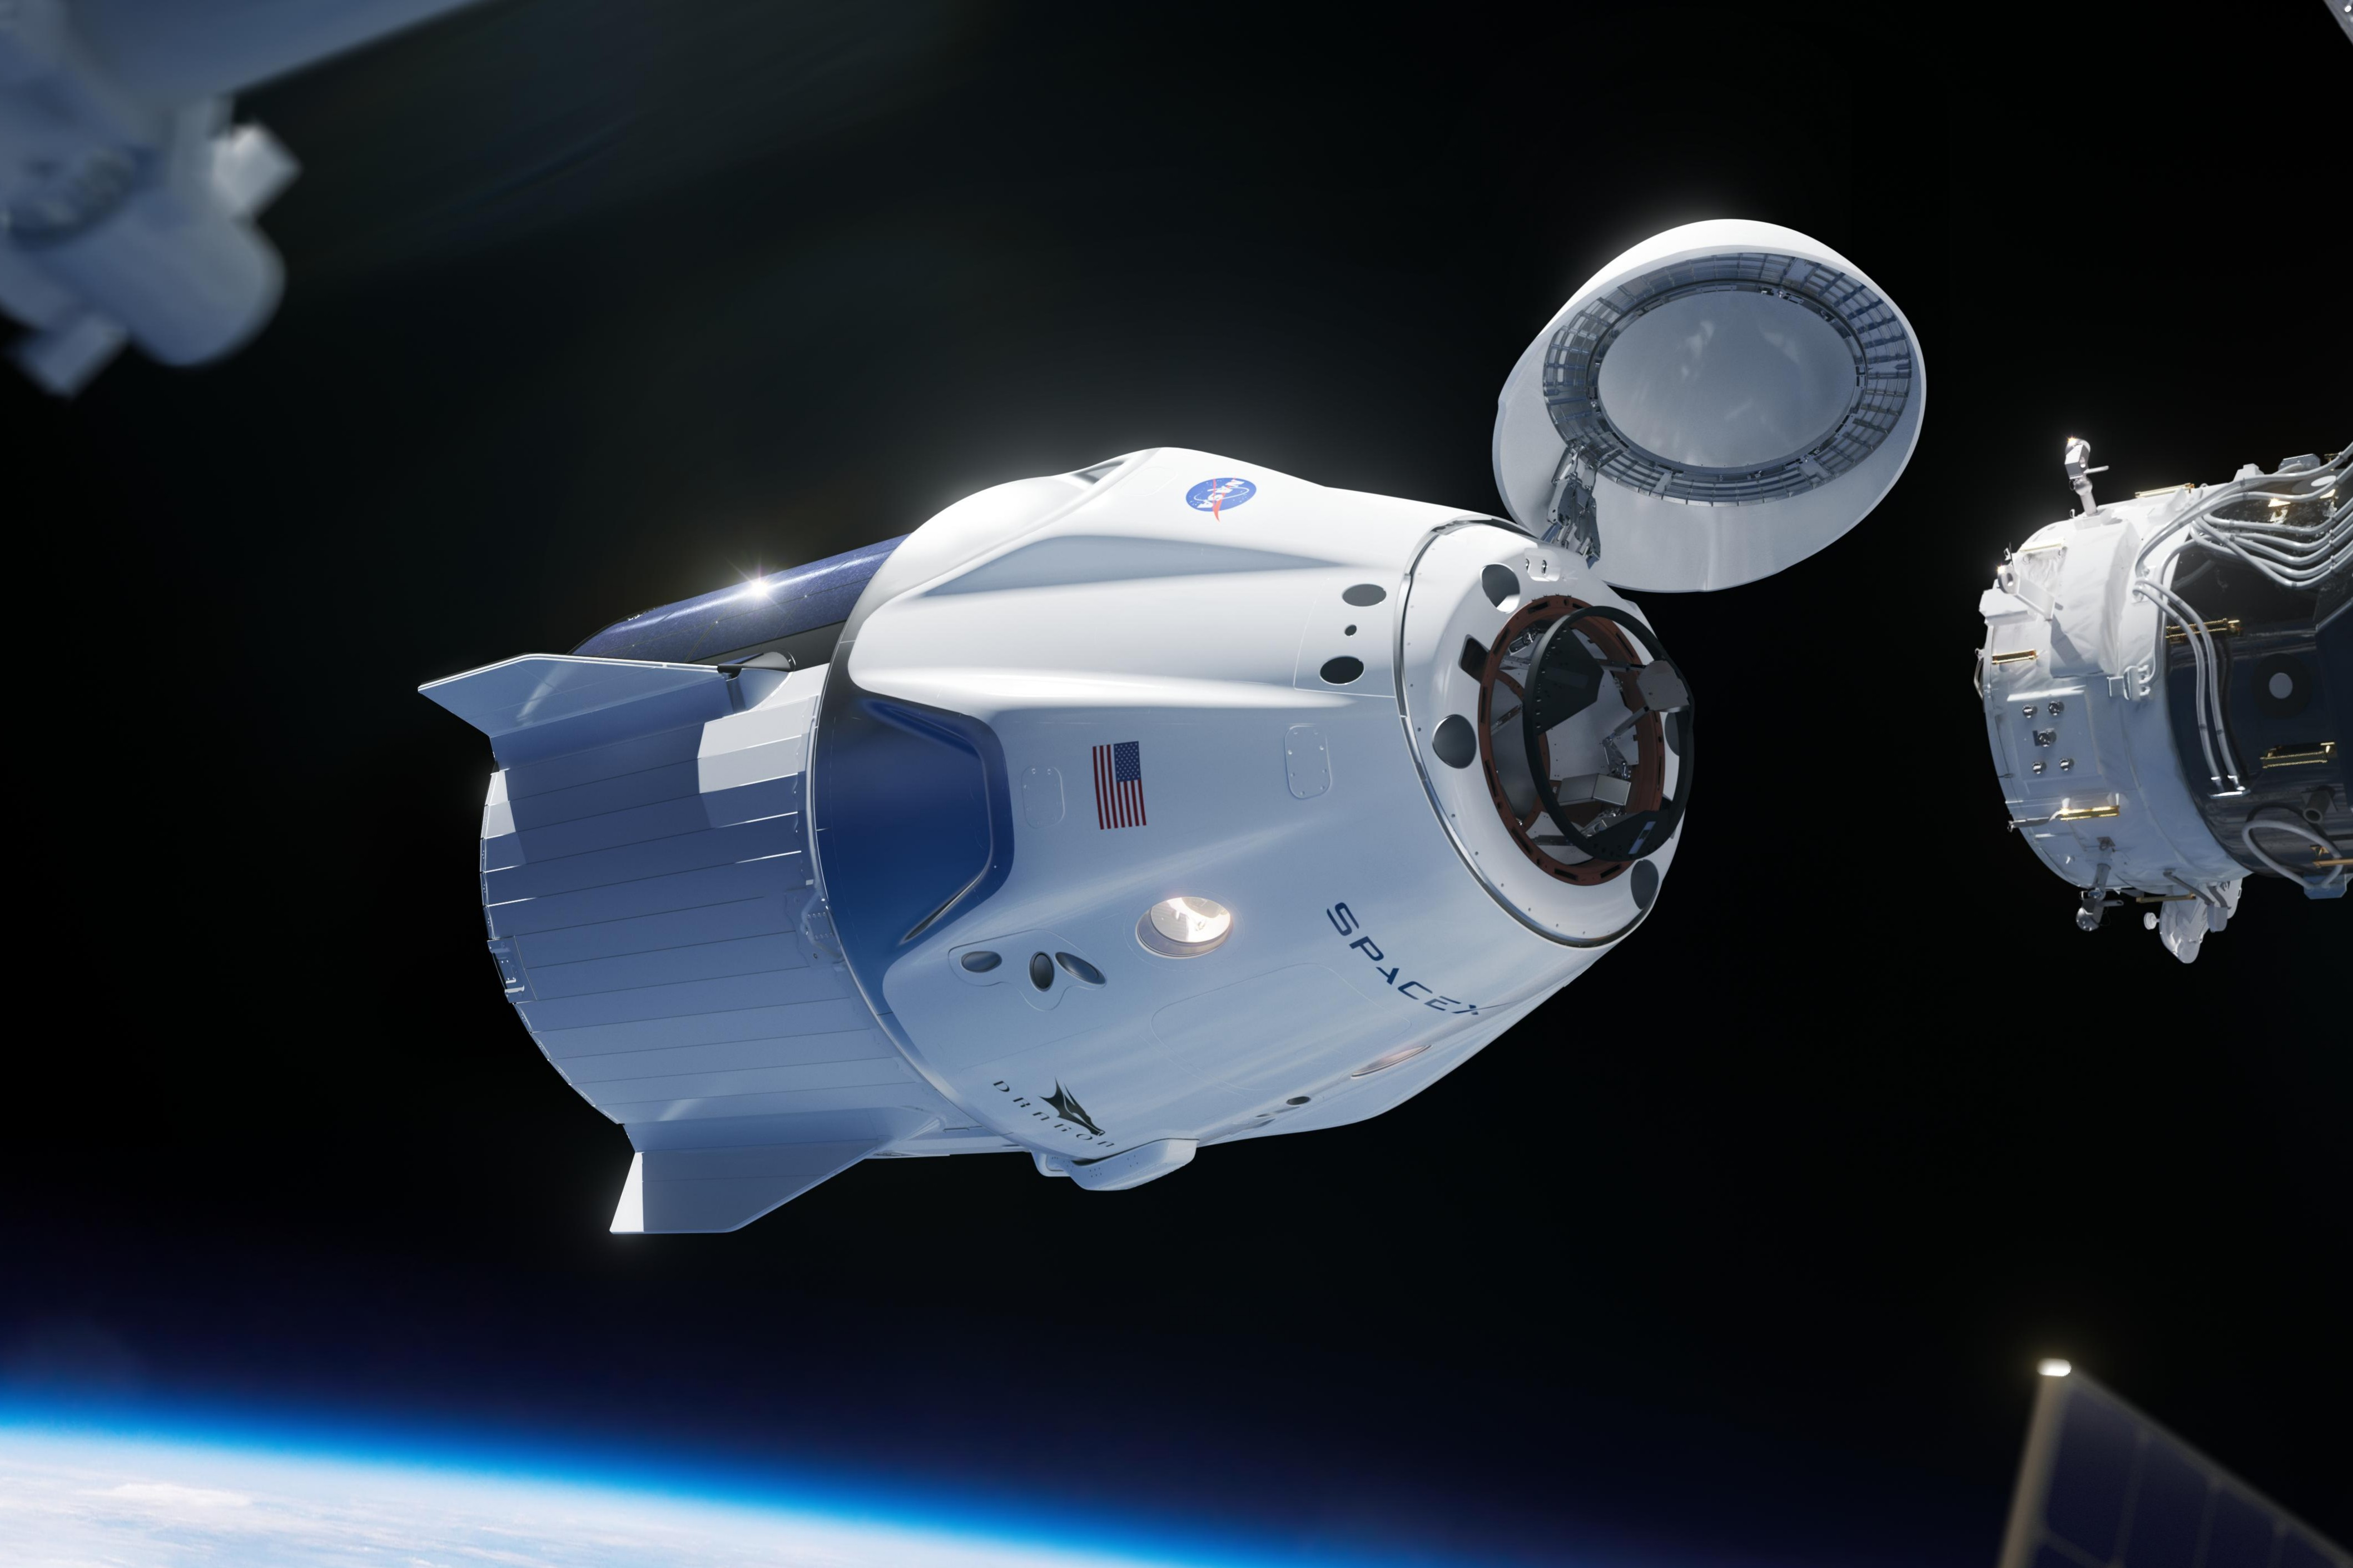 SpaceX capsule in space